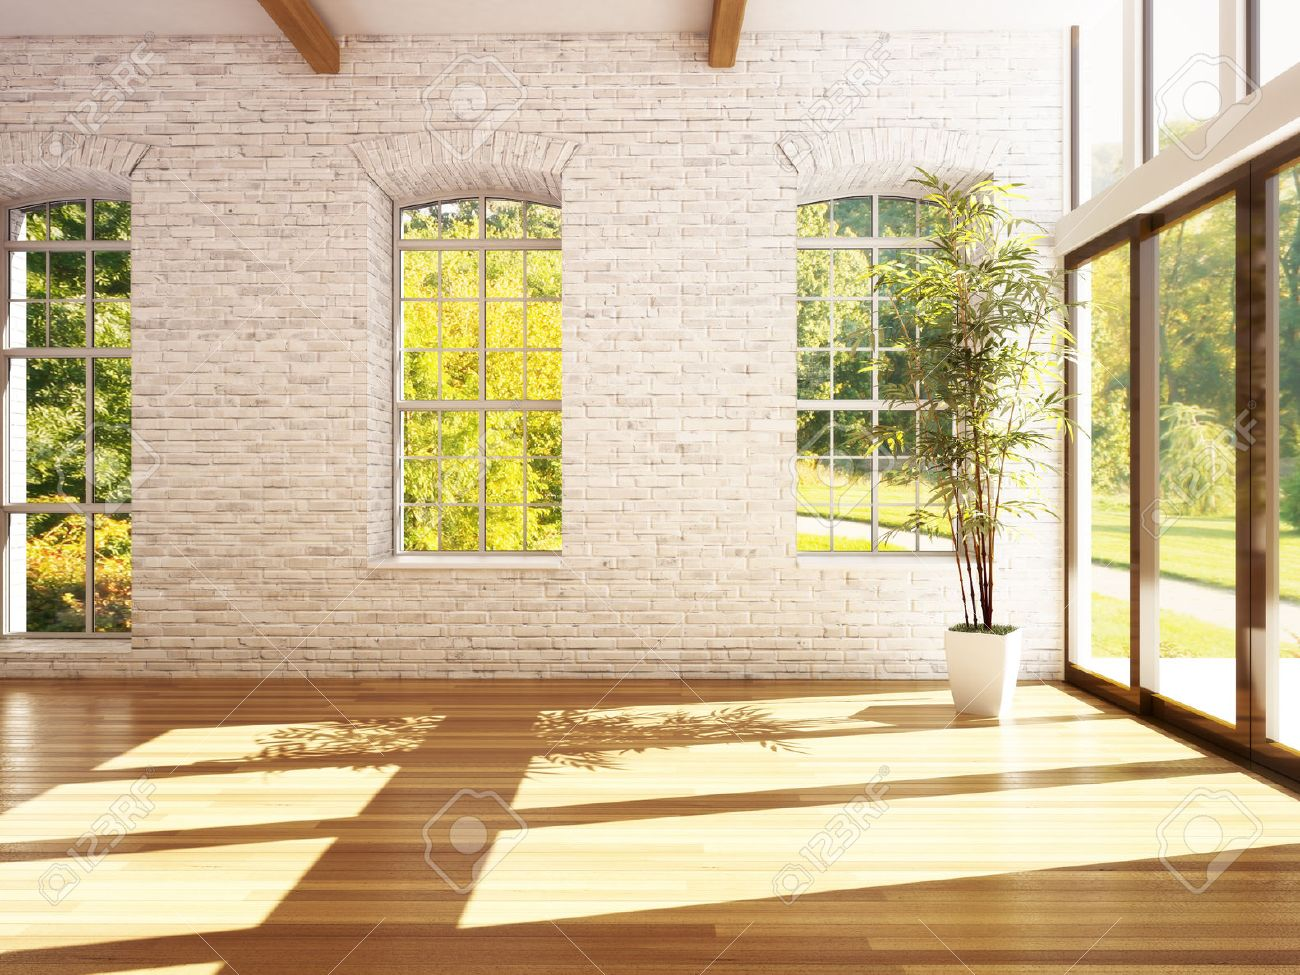 Empty room of business, or residence with hardwood floors, stone walls and woods background. Photo realistic 3d rendering. Standard-Bild - 43954931